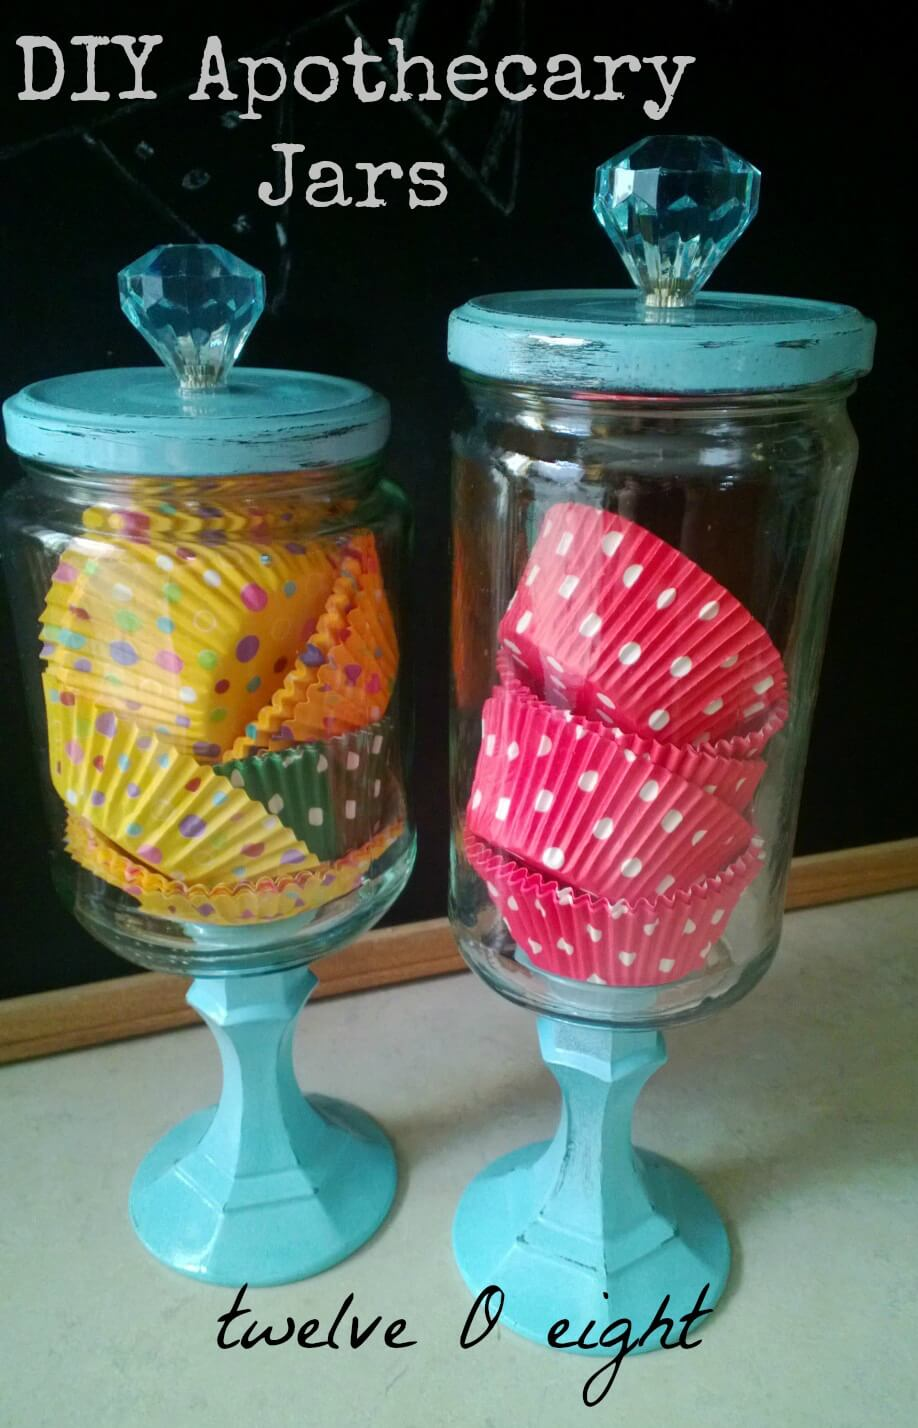 Baking Accessories in Apothecary Jars